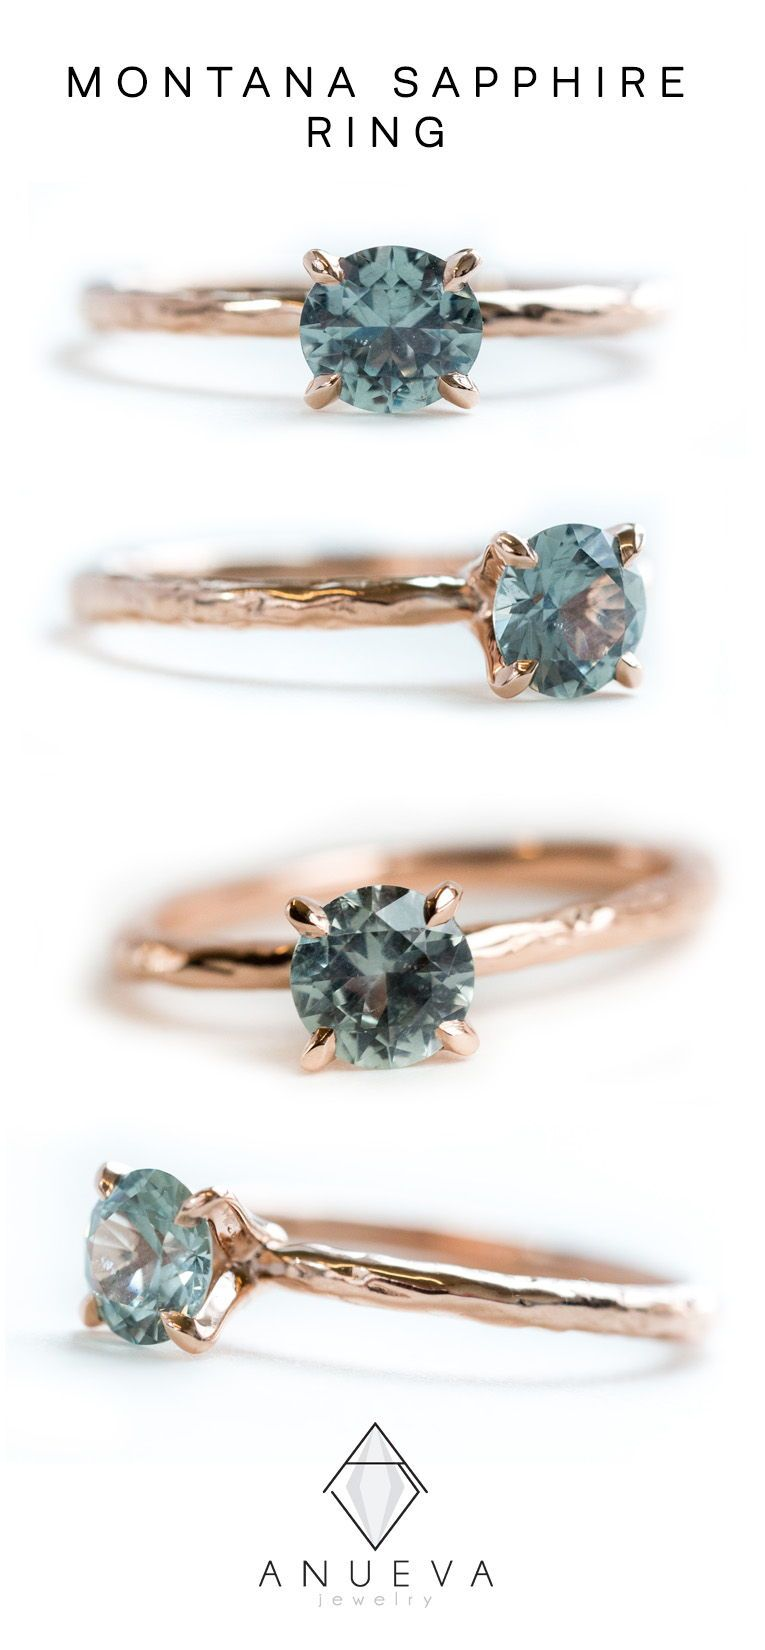 3a9b8f63a MONTANA SAPPHIRES- We love everything about these! Responsibly mined in  America, gorgeous mermaid tones, and unique. They look amazing set in rose  gold.